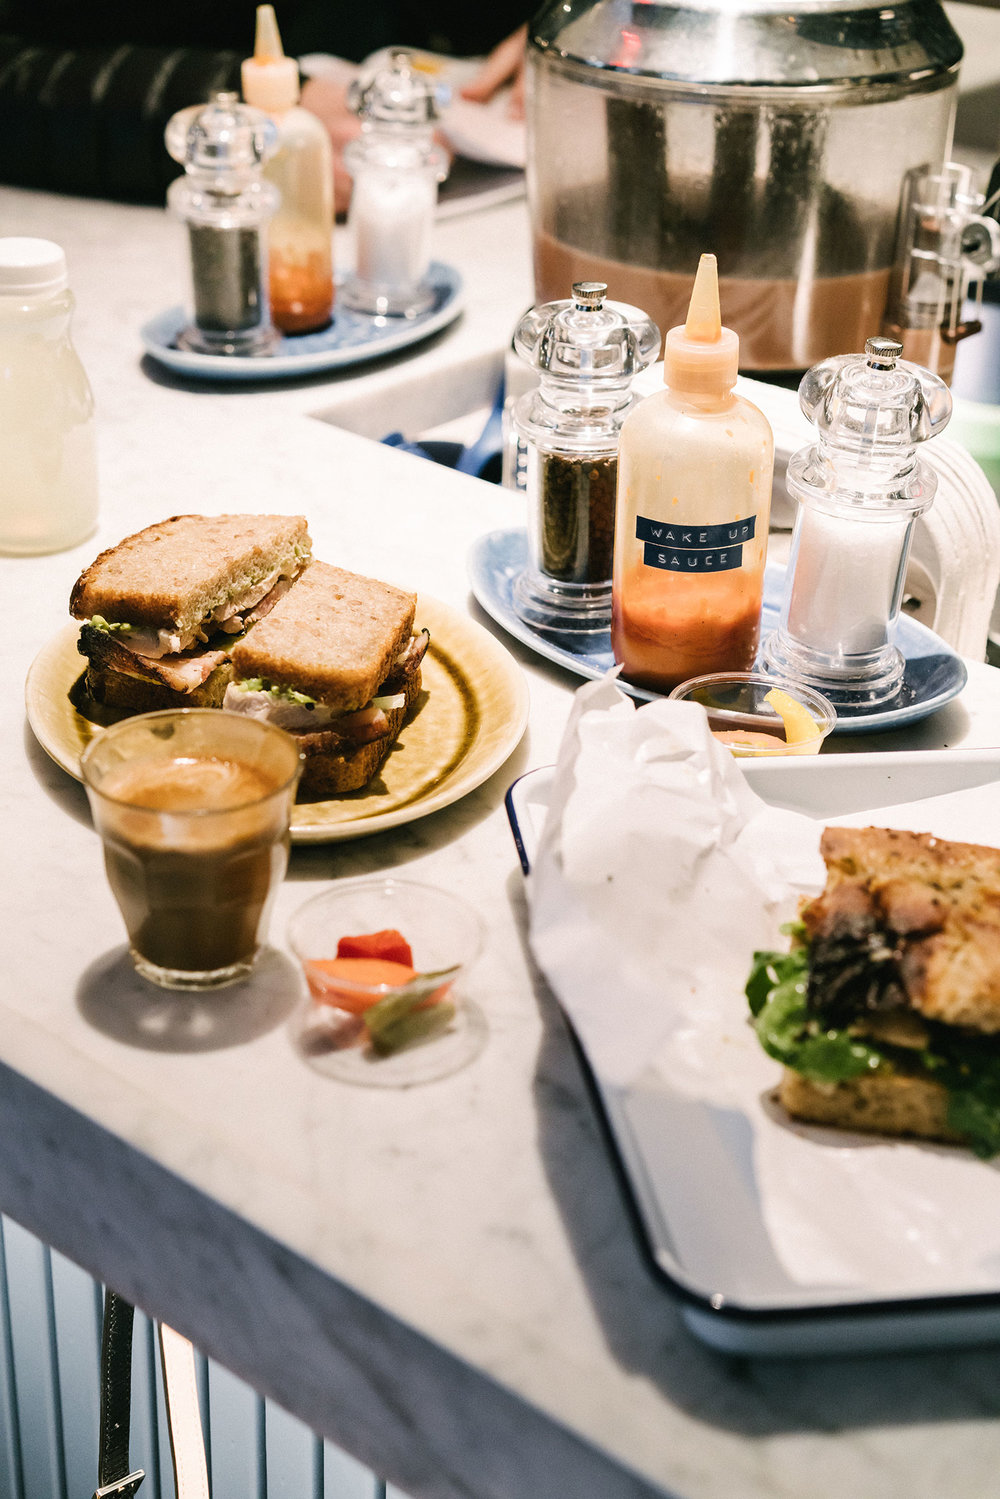 Coffee and sandwiches at Daily Provisions